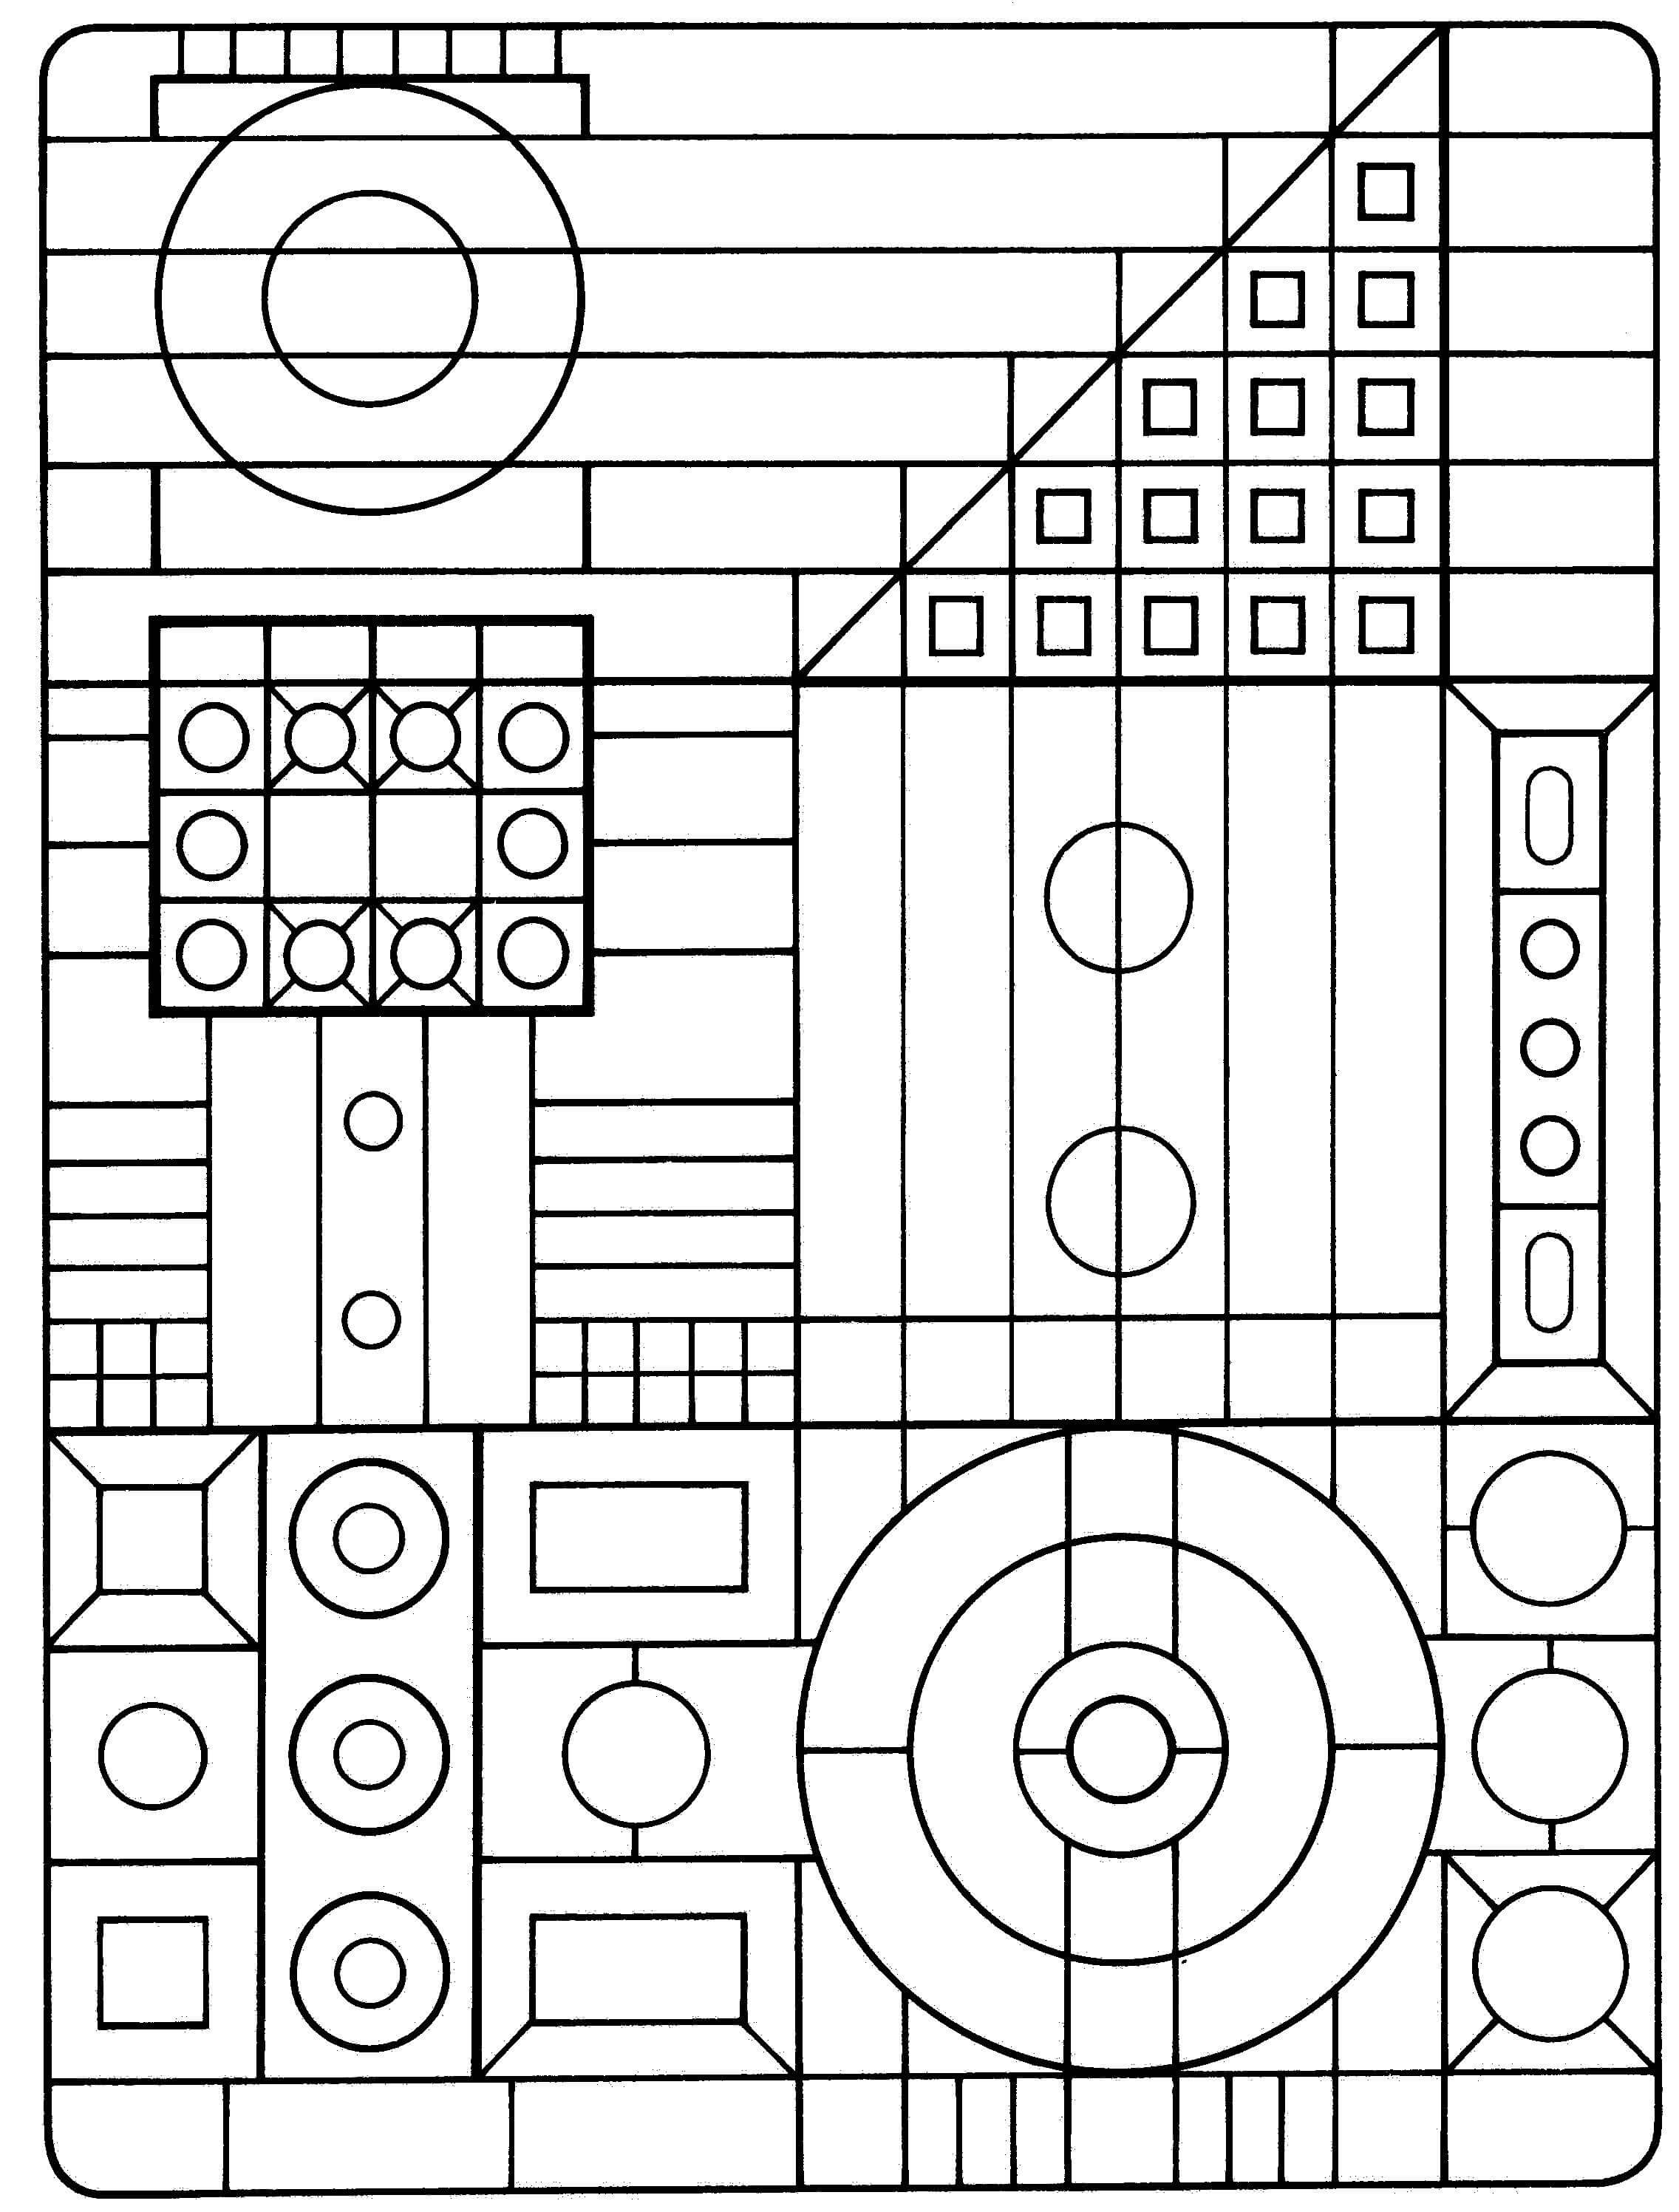 Abstract Shapes Coloring Pages : Abstract shapes coloring pages az